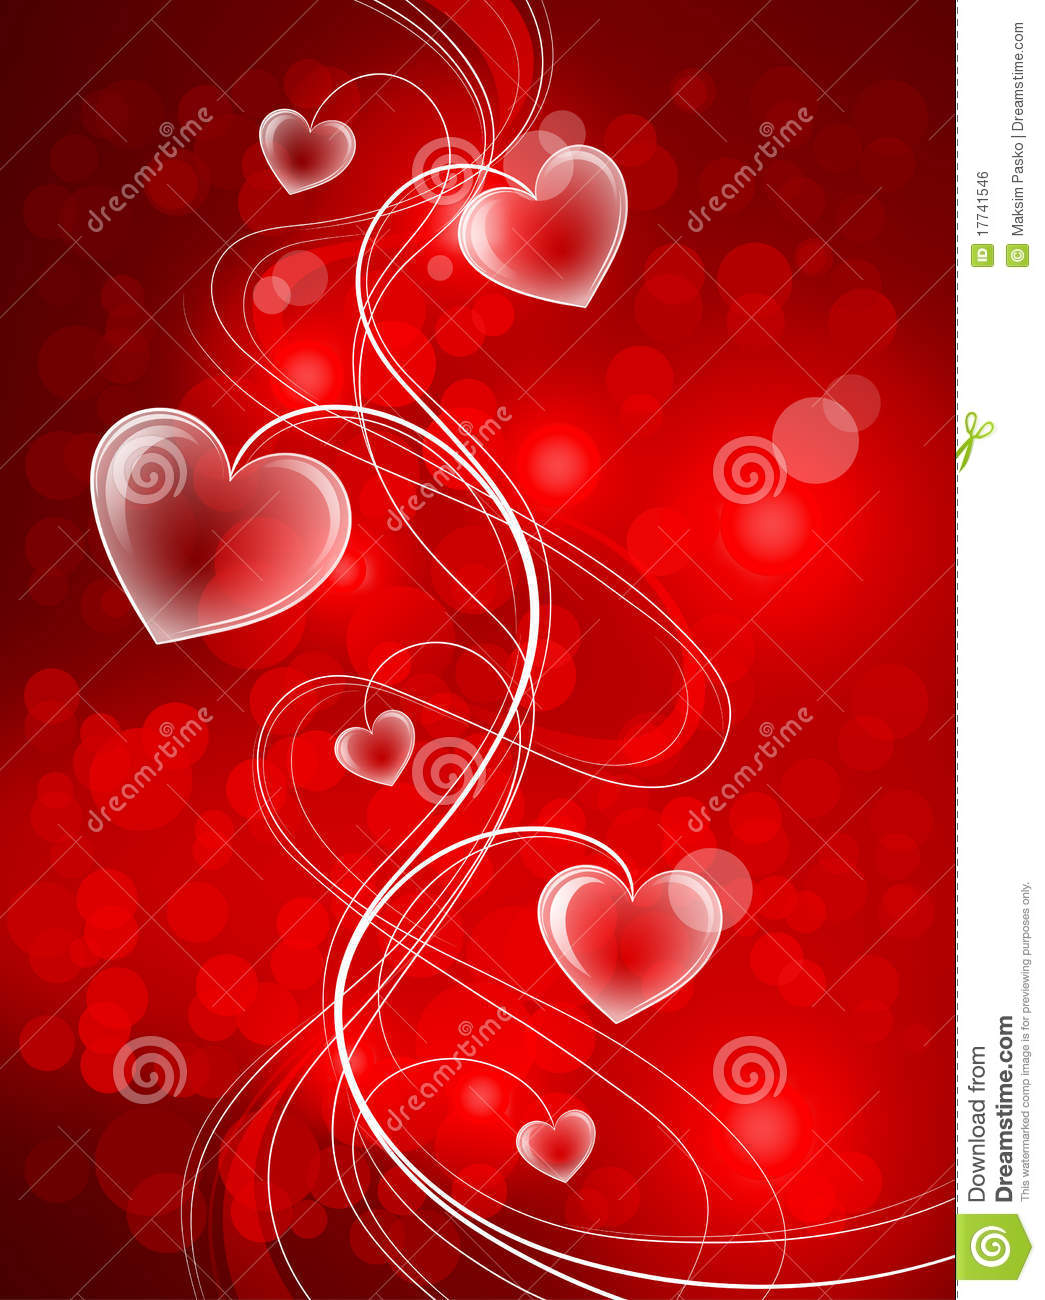 valentines day background clipart - photo #31